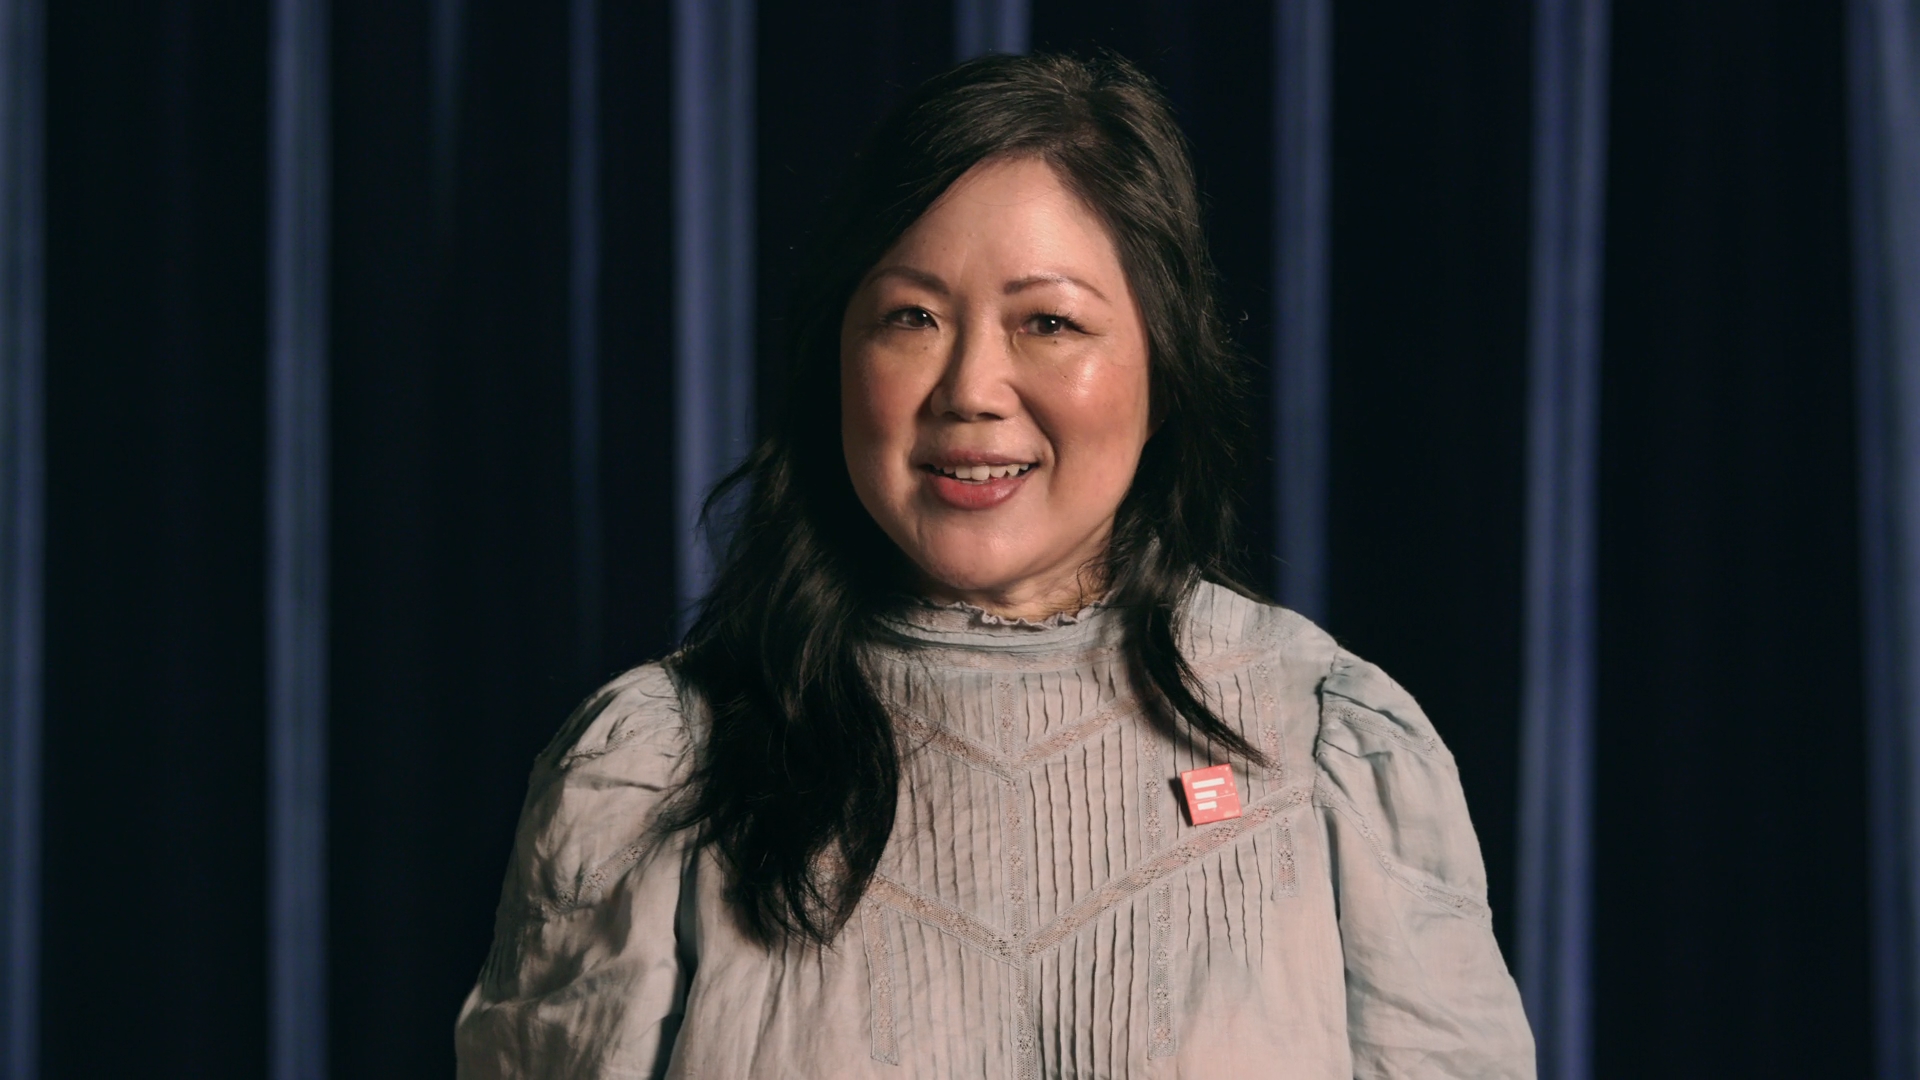 Margaret Cho asks comedians to participate in bringing down the wait for gender equality